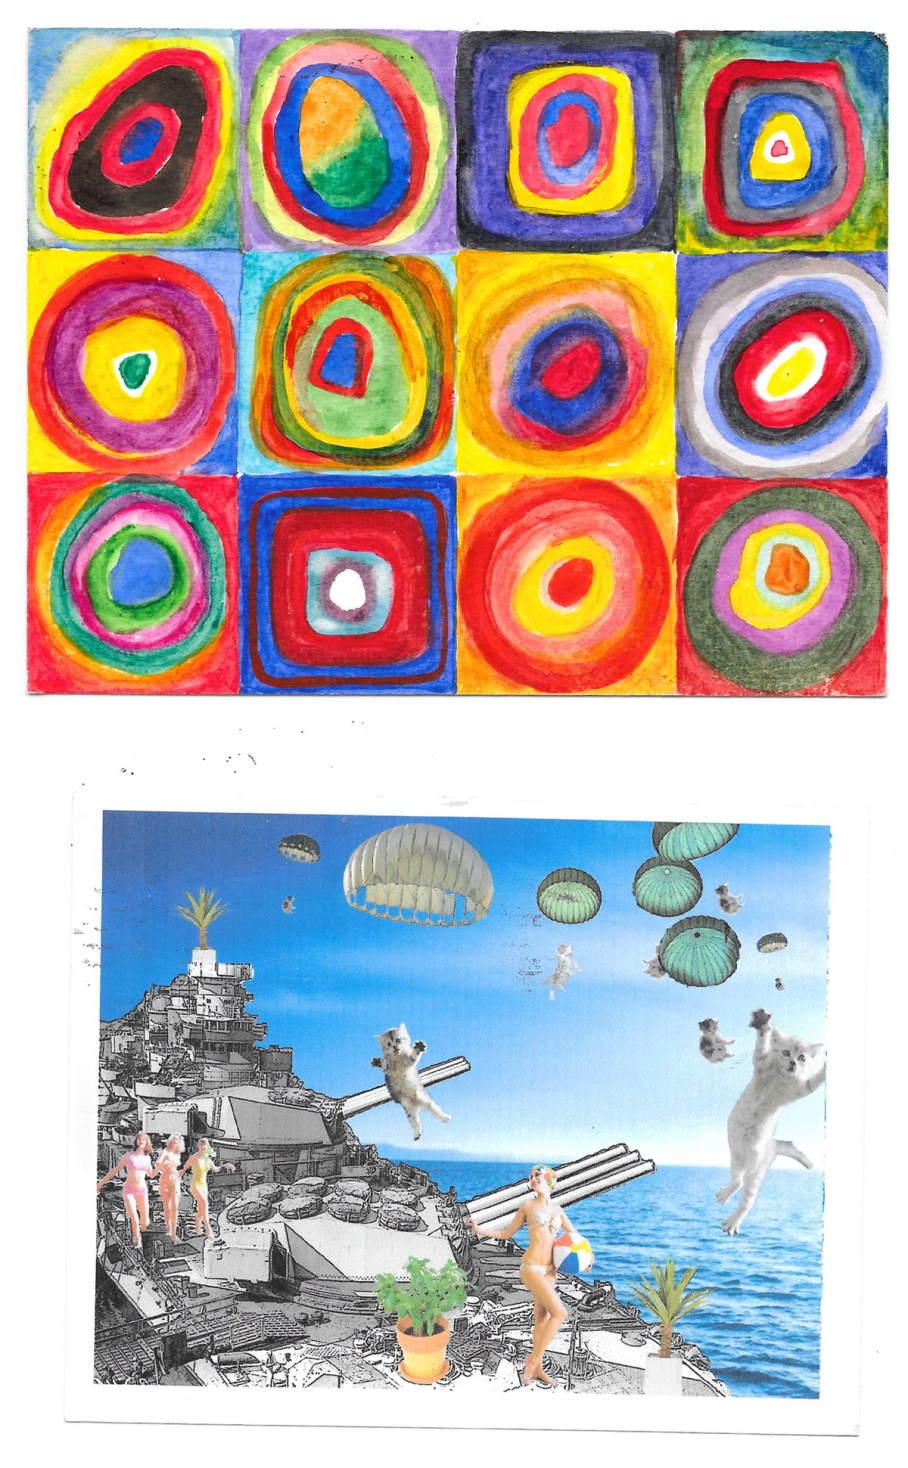 postcards with colorful circles and parachuting cats